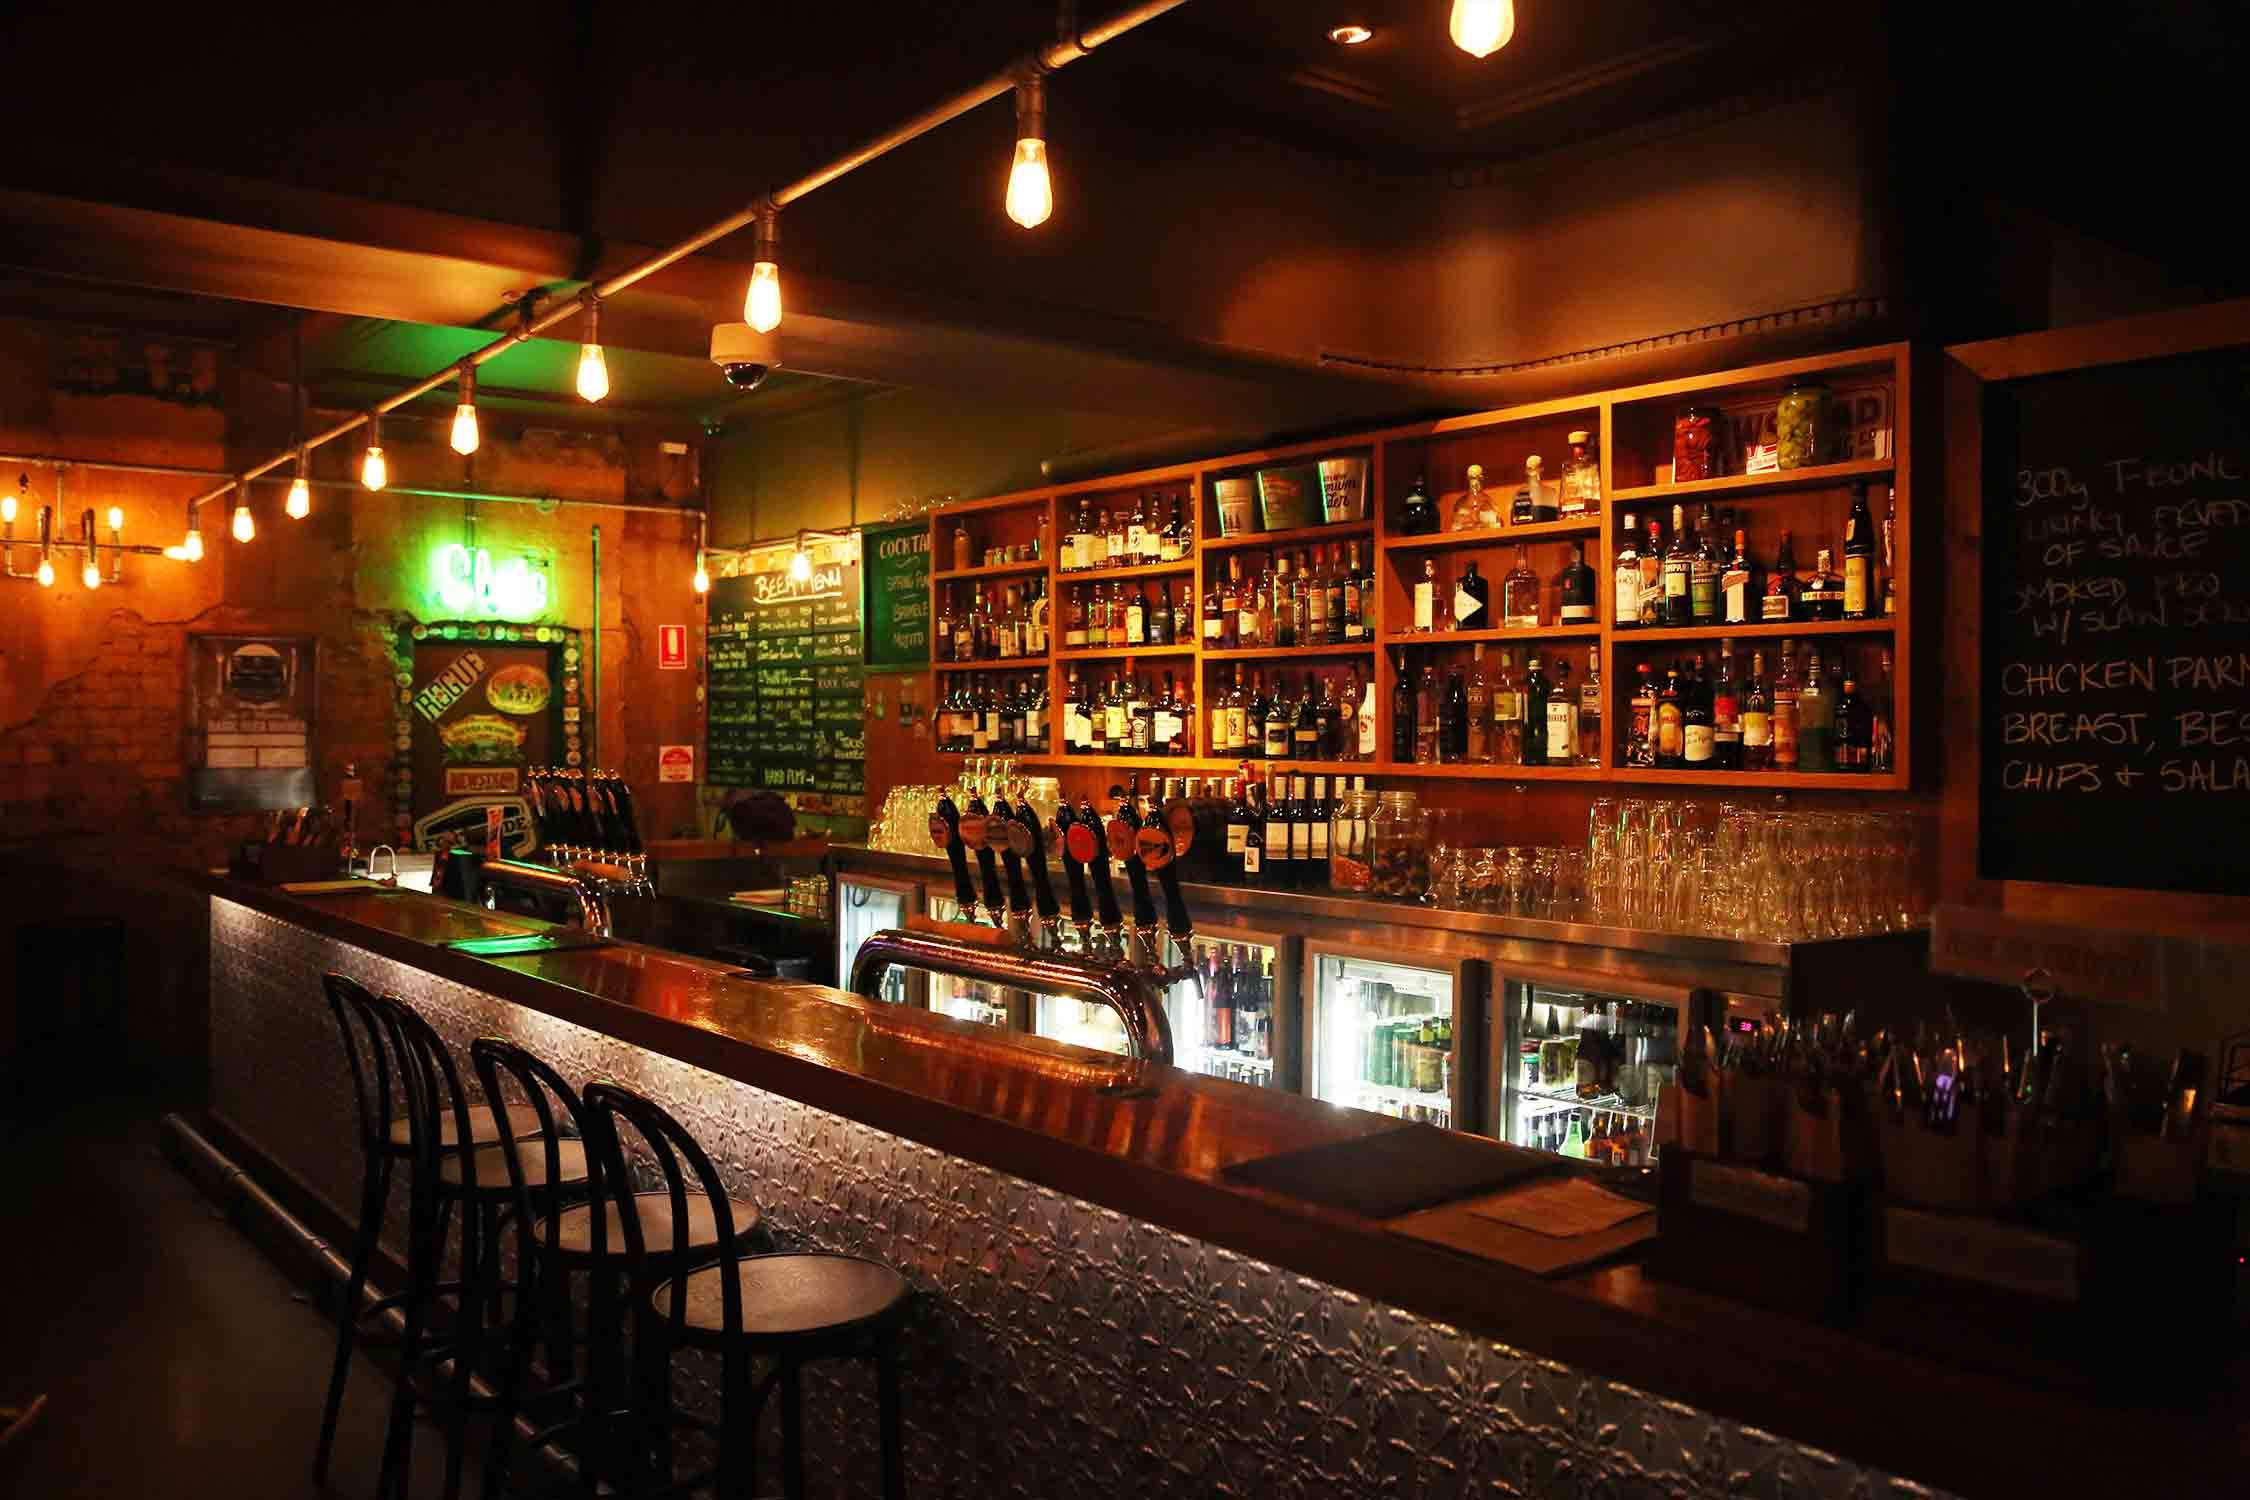 Embassy-Craft-Beer-Bar-Function-Rooms-Brisbane-Venues-CBD-Venue-Hire-Small-Party-Birthday-Corp...jpg